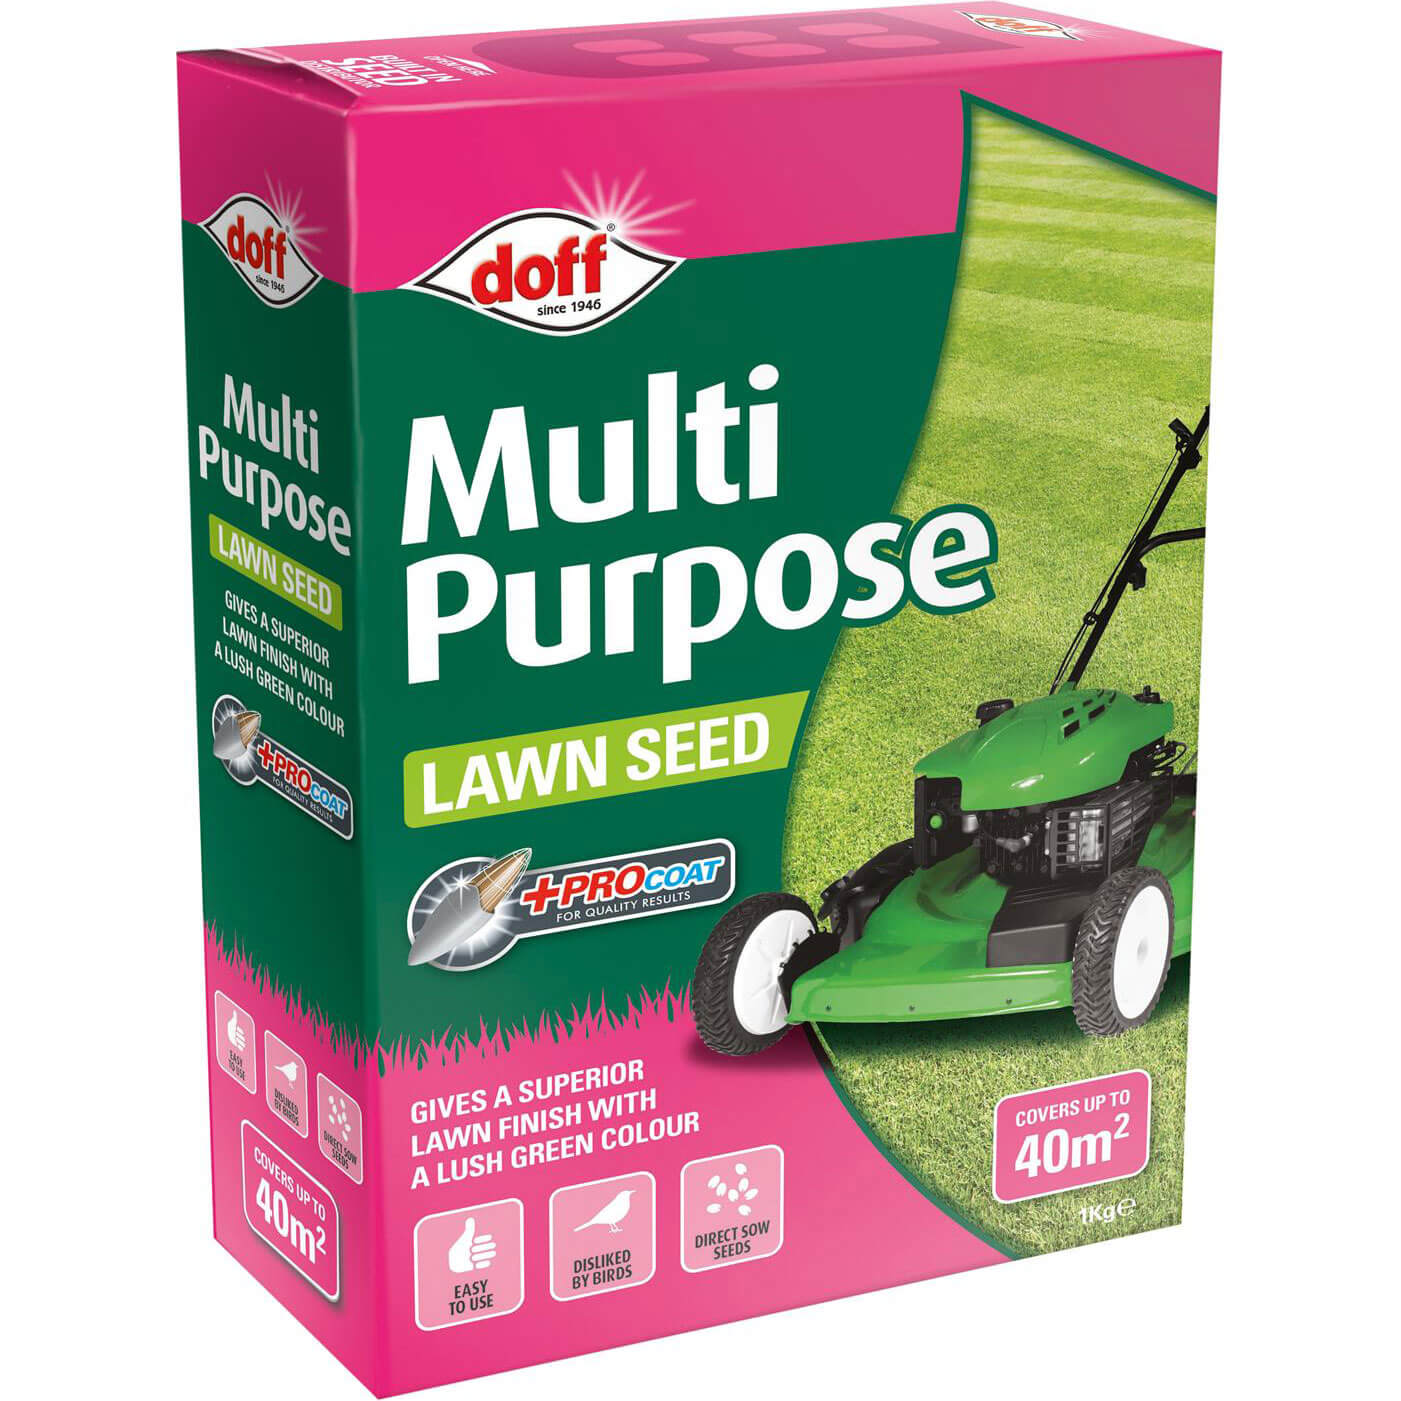 Image of Doff Multi Purpose Lawn Seed 1kg